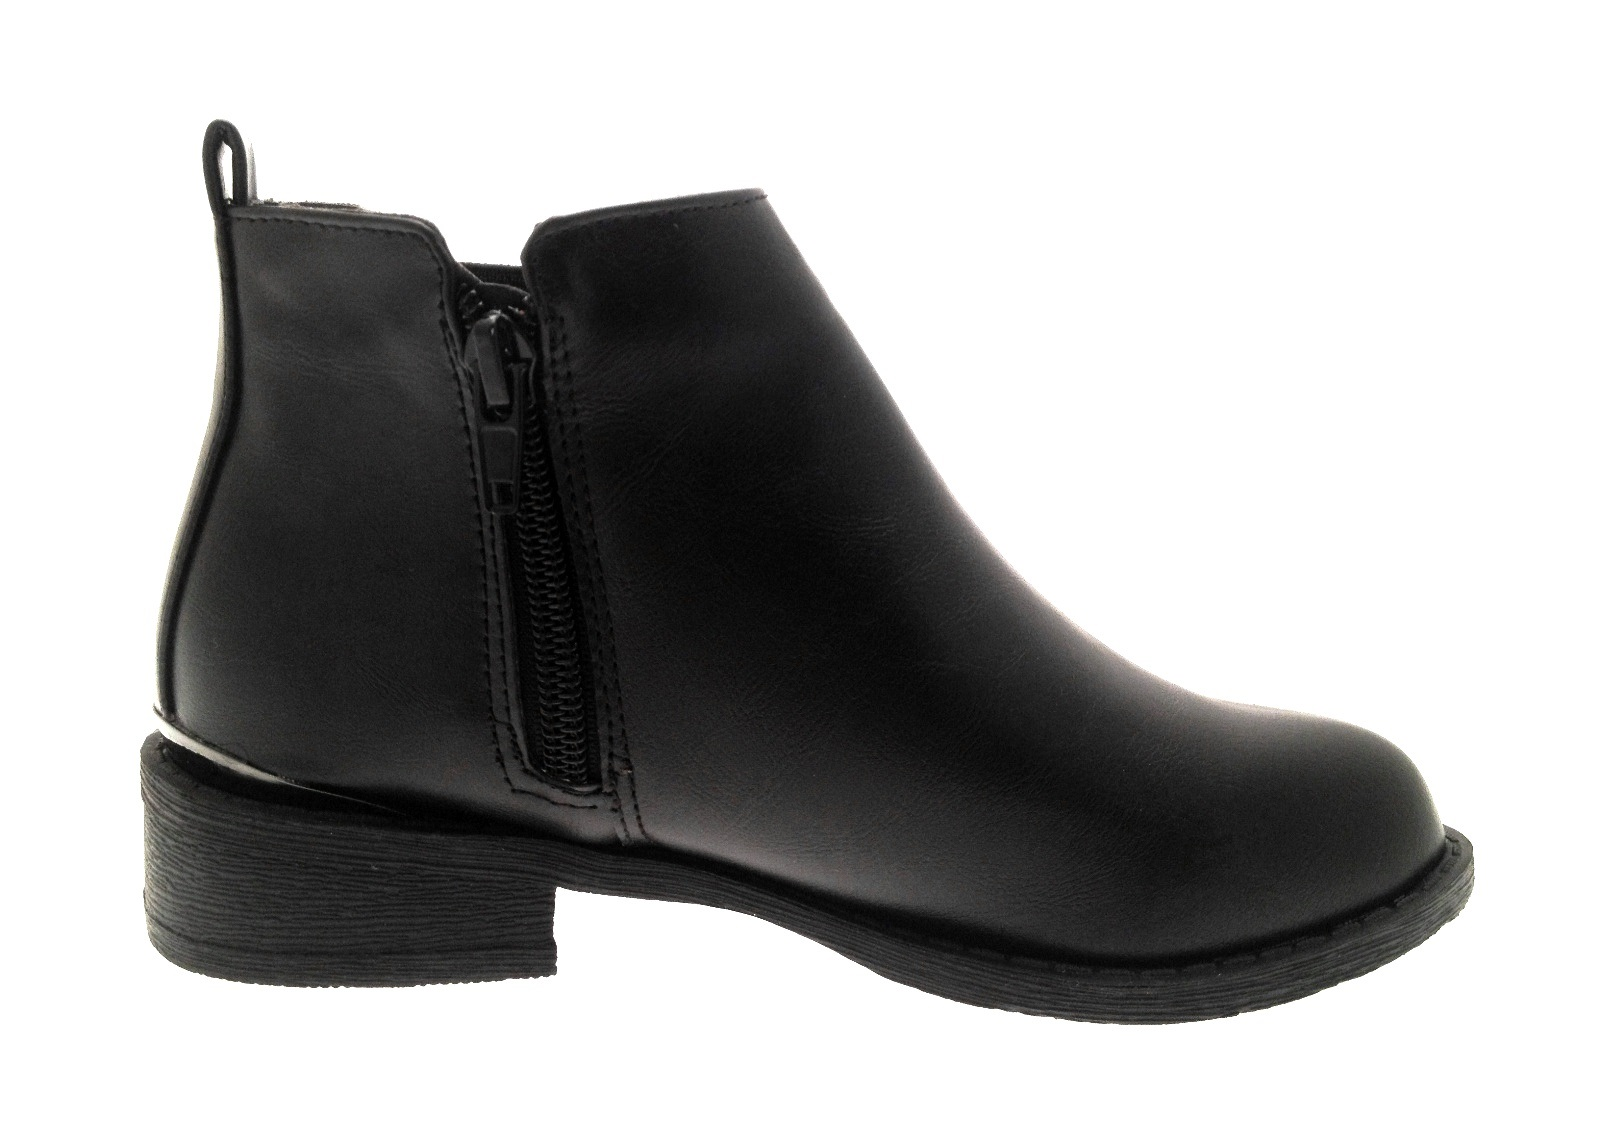 Girls' Shoes & Boots: Baker by Ted Baker